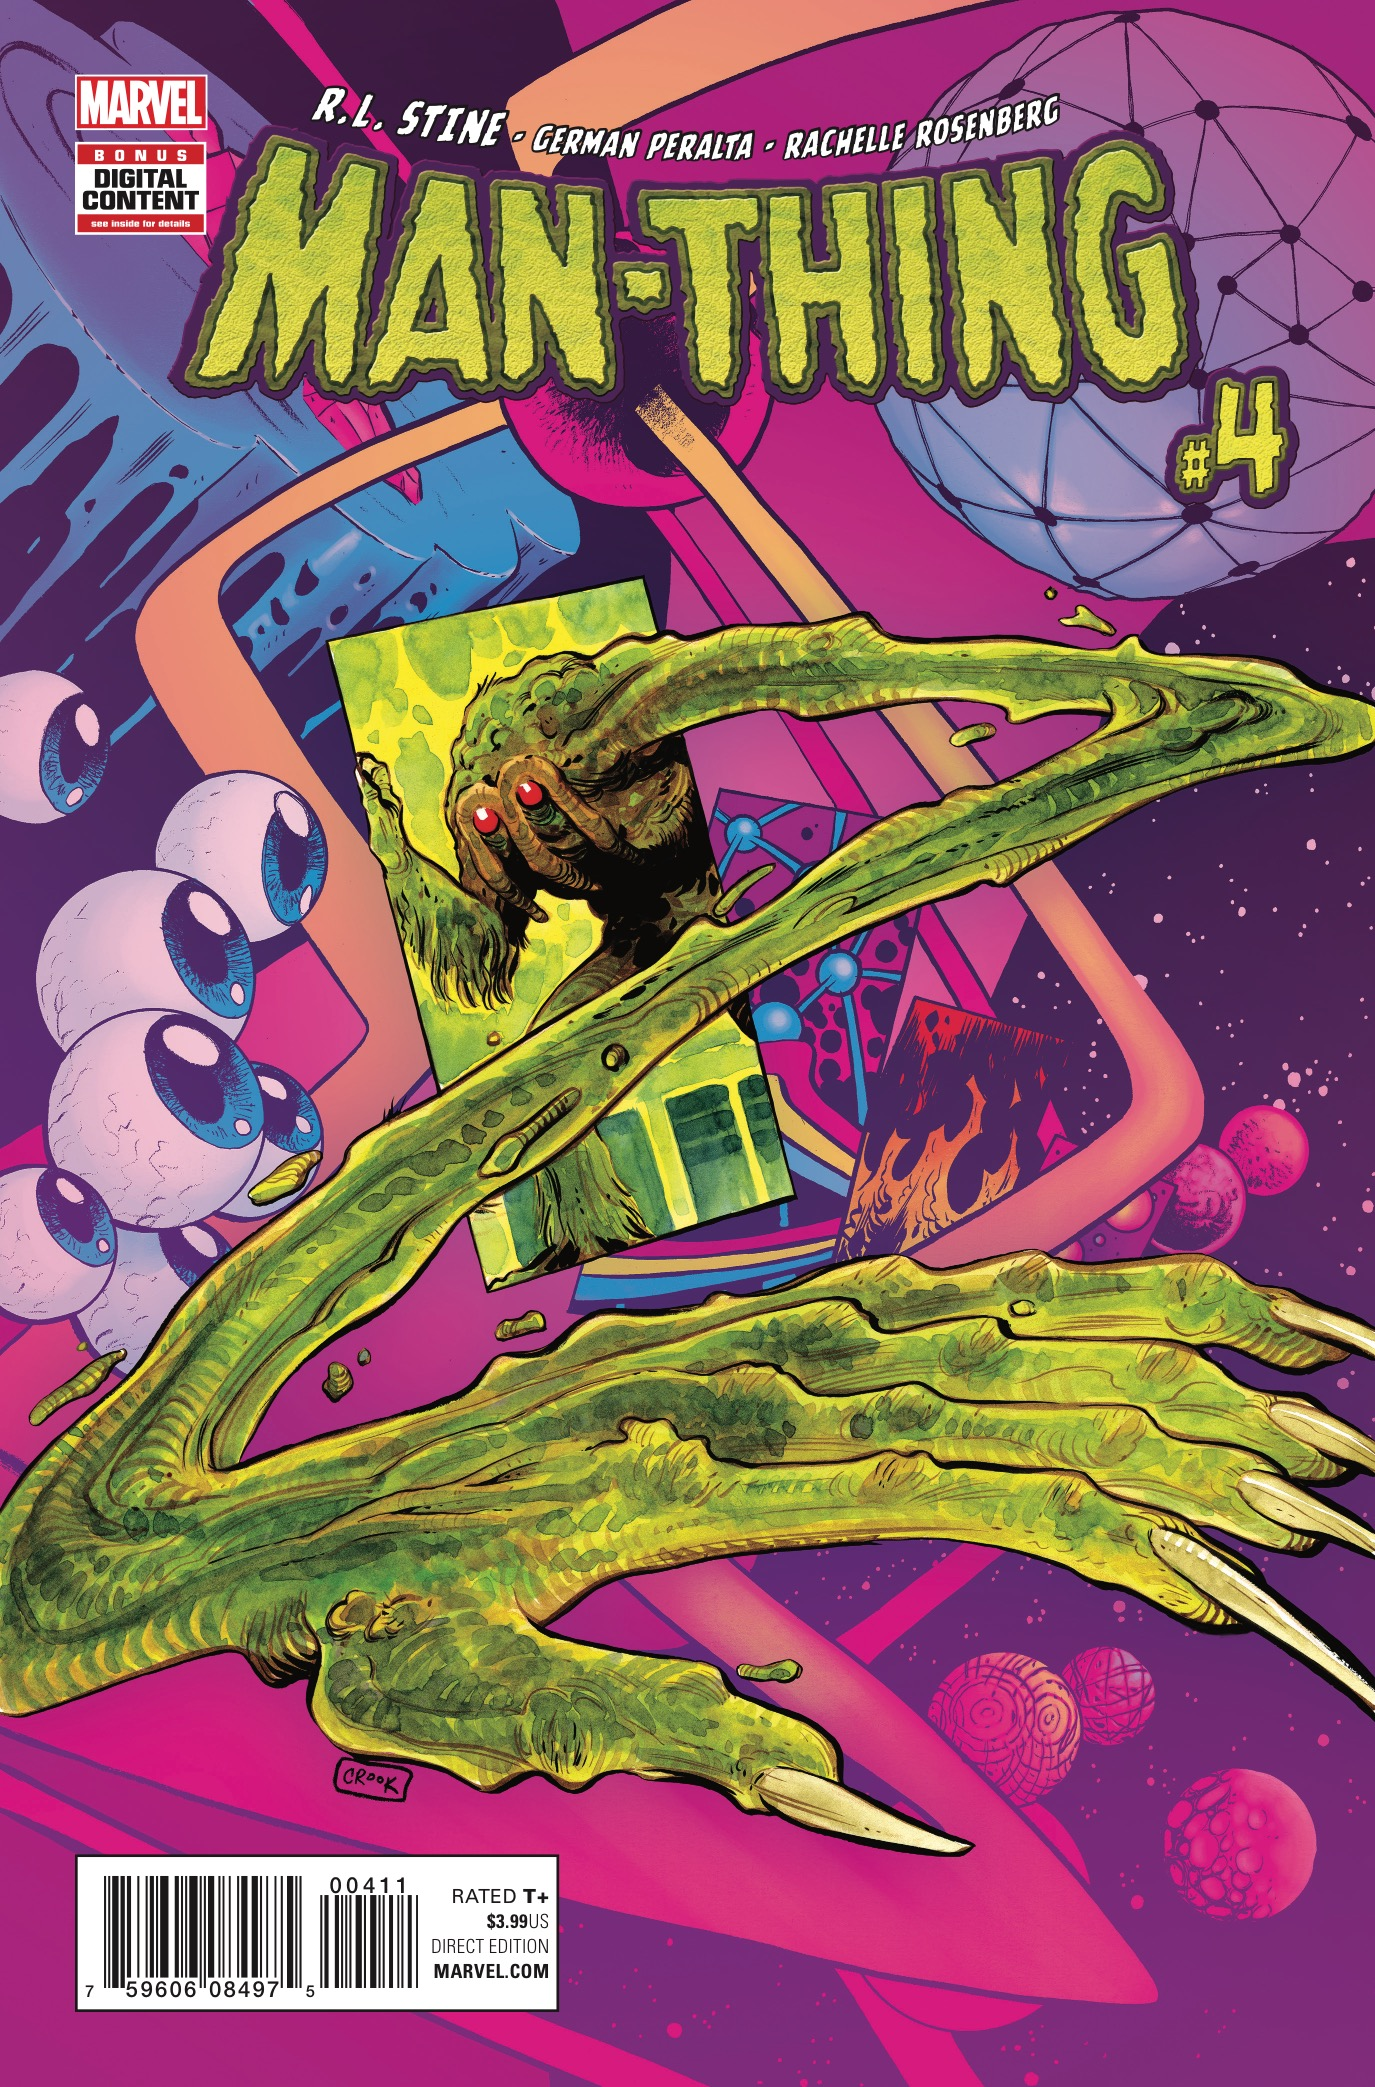 Marvel Preview: Man-Thing #4